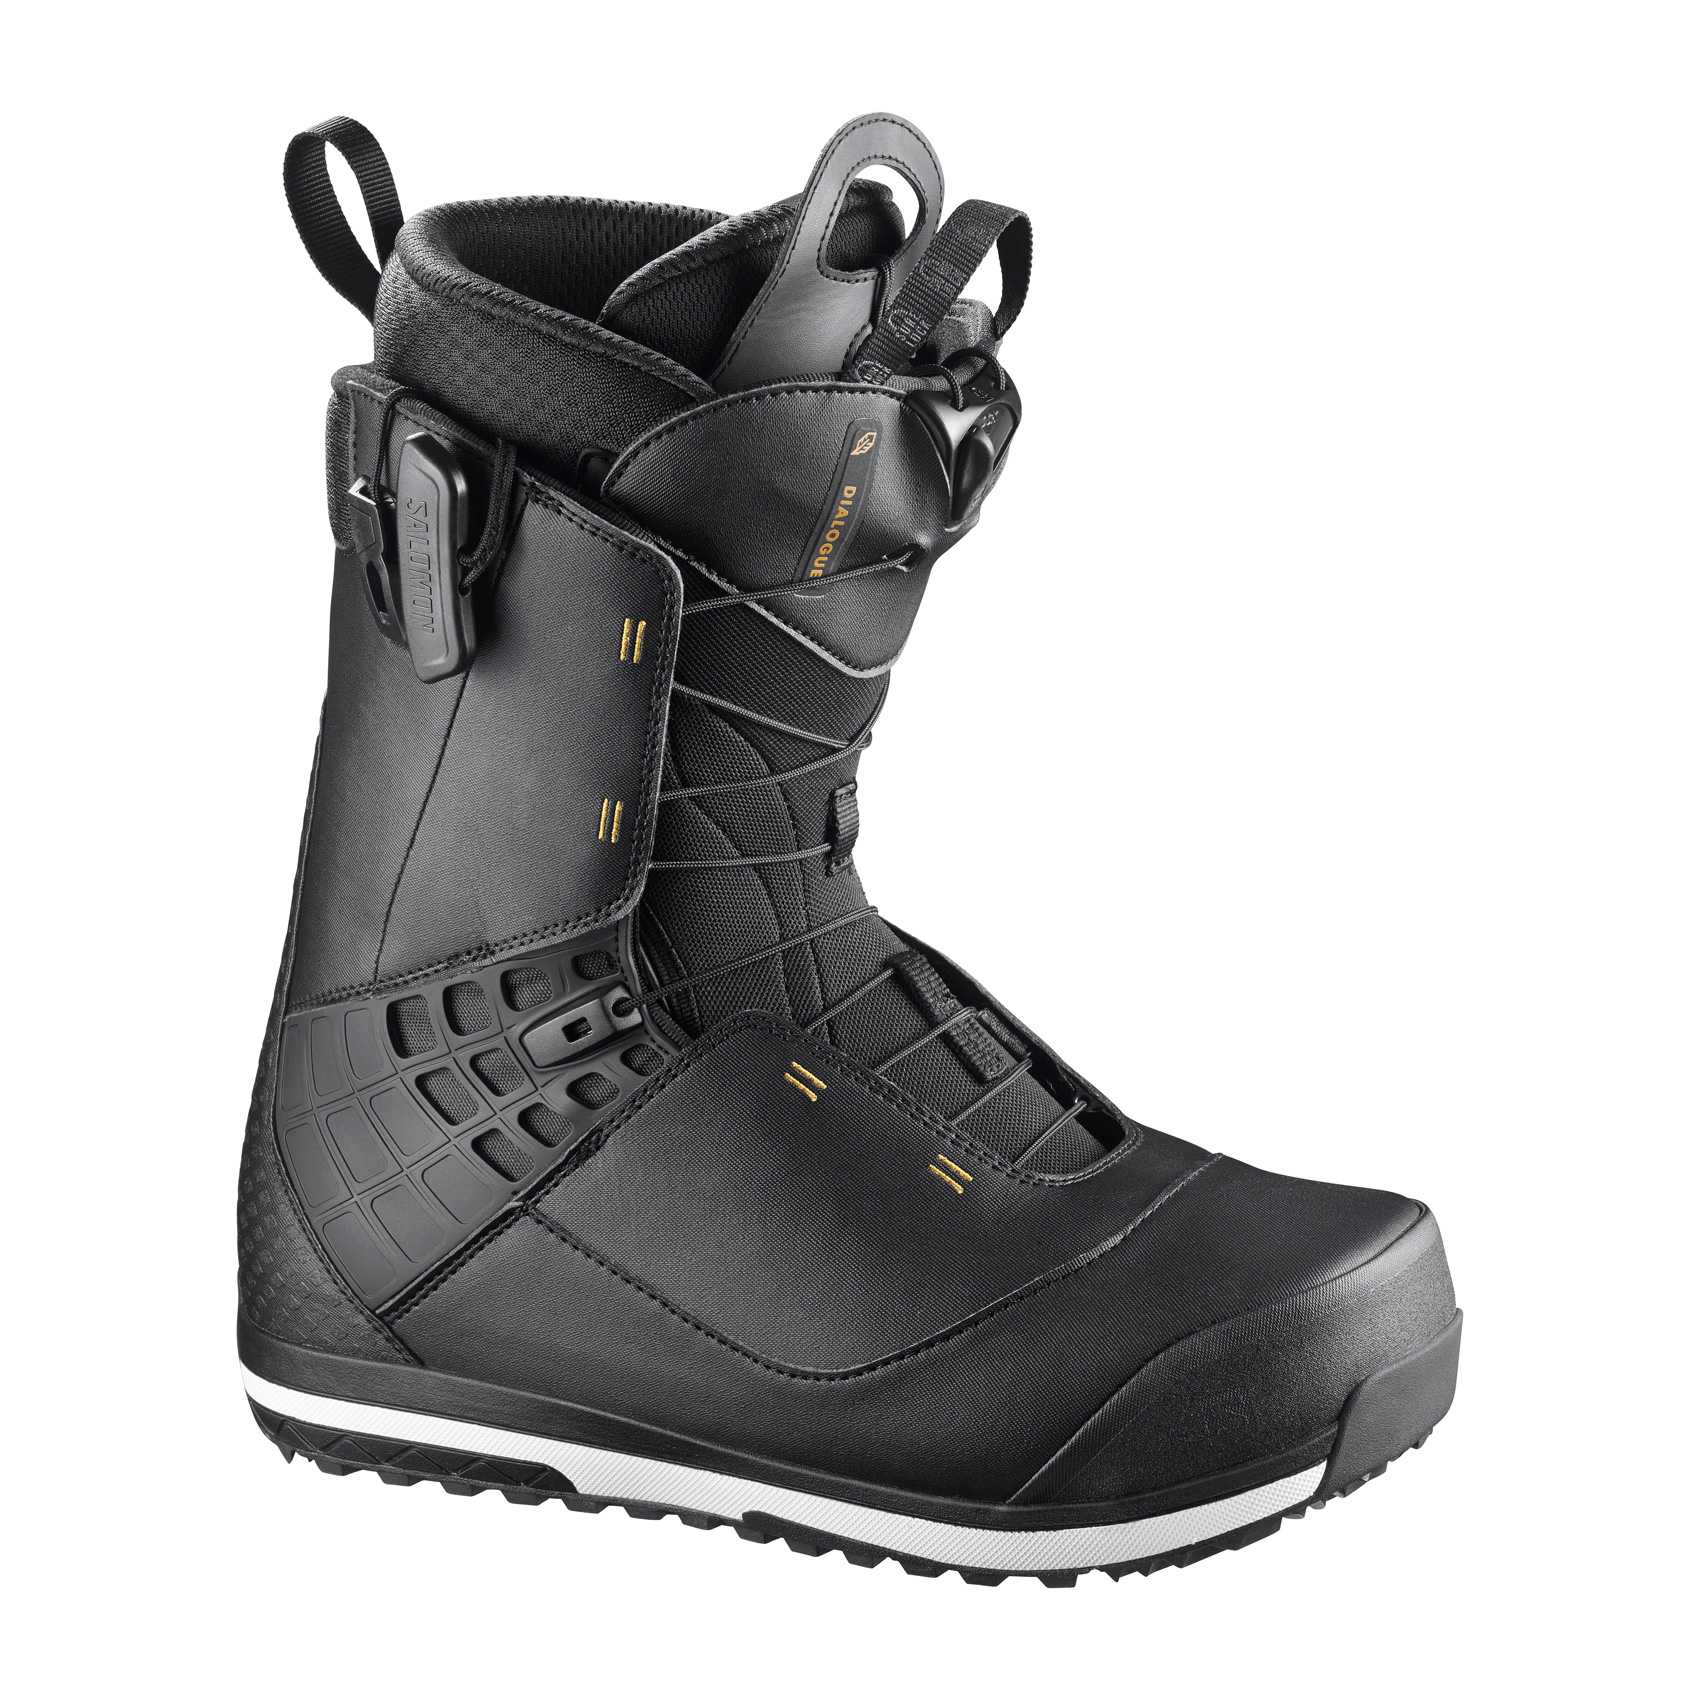 Salomon Dialogue Wide boots in UK9.5 review